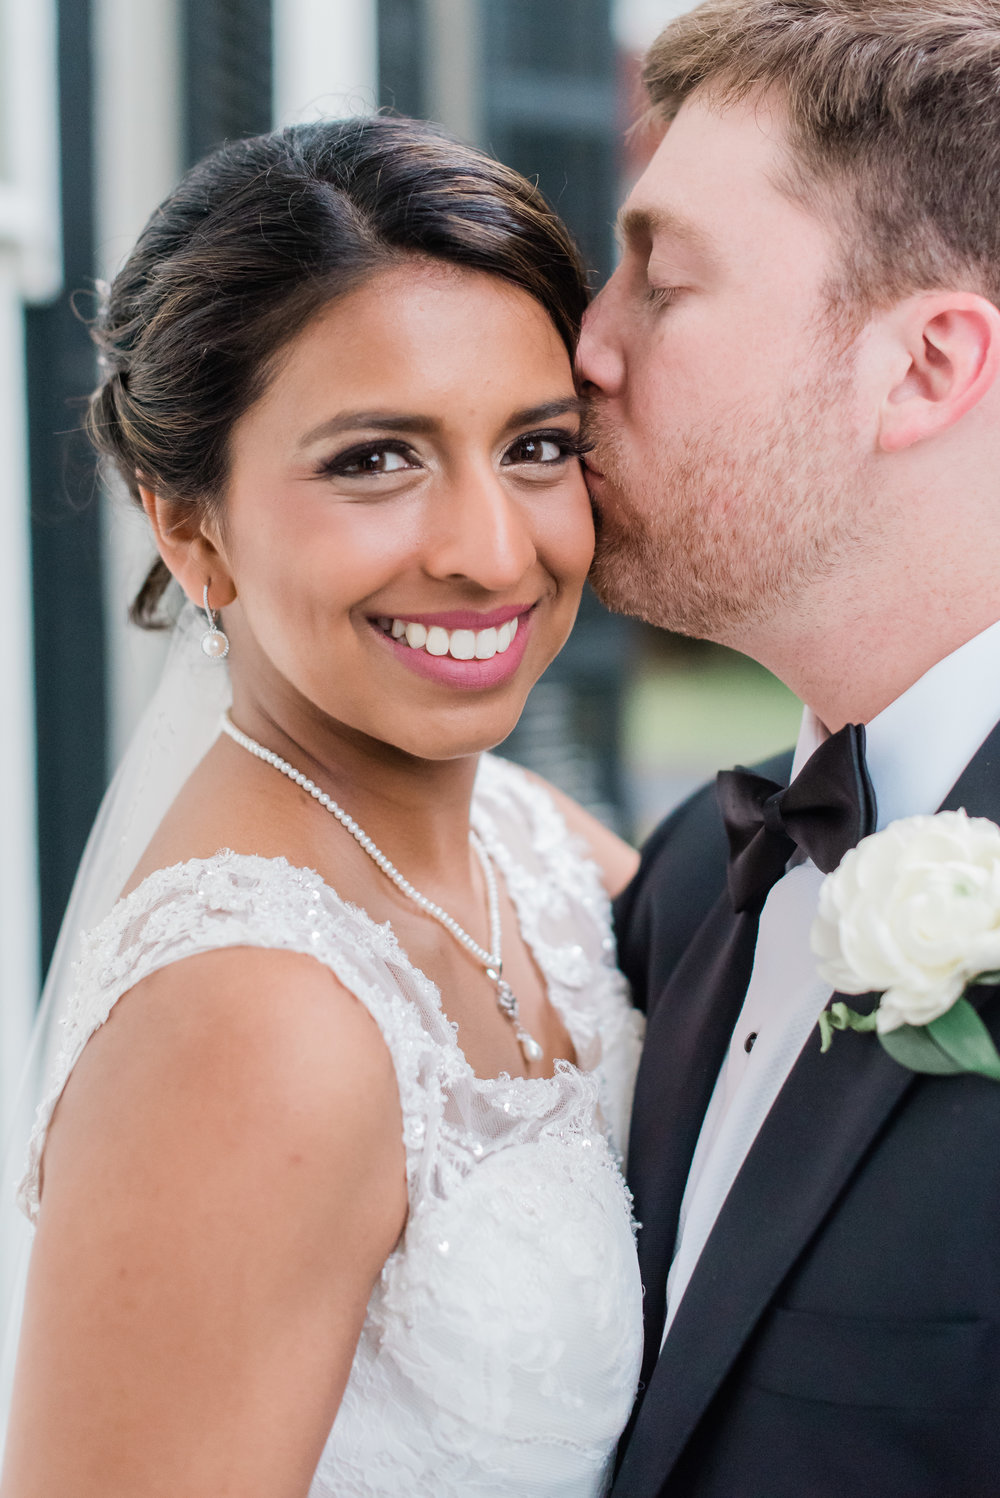 Justin_Priya_Fernicola_Wedding_Columbus_Georgia_Fallen_Photography-1305.JPG